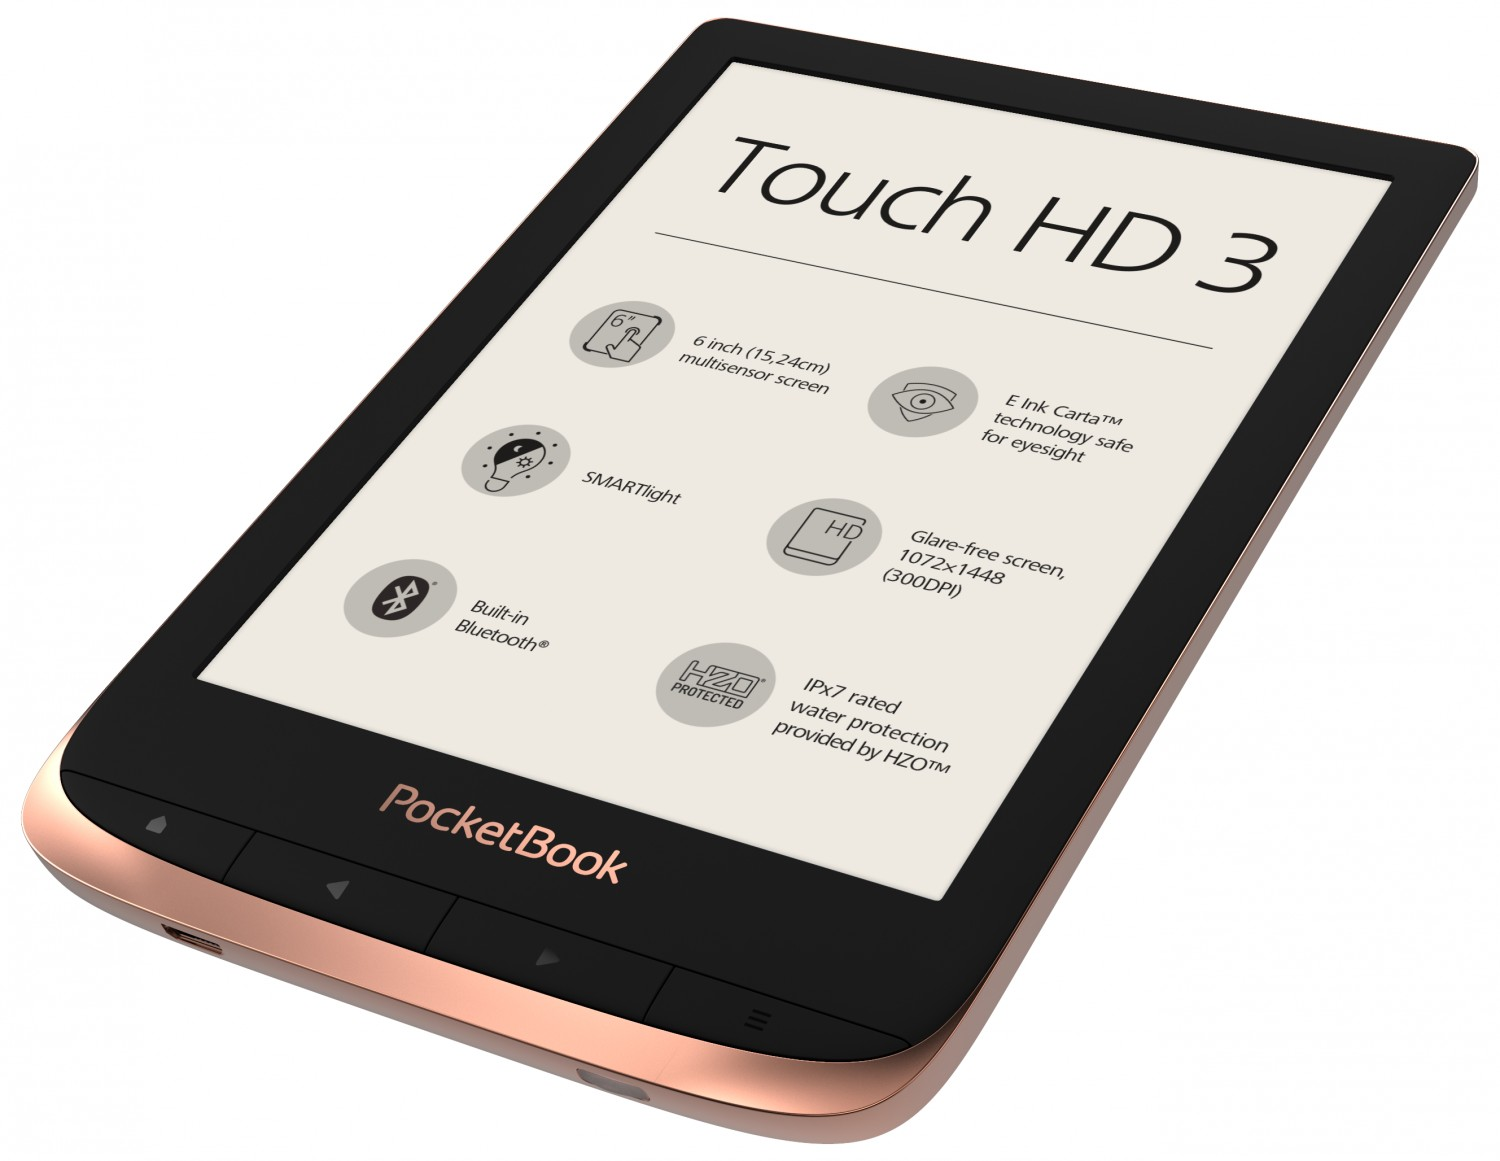 E-Book Reader Pocketbook Touch HD 3 im Test, Bild 1